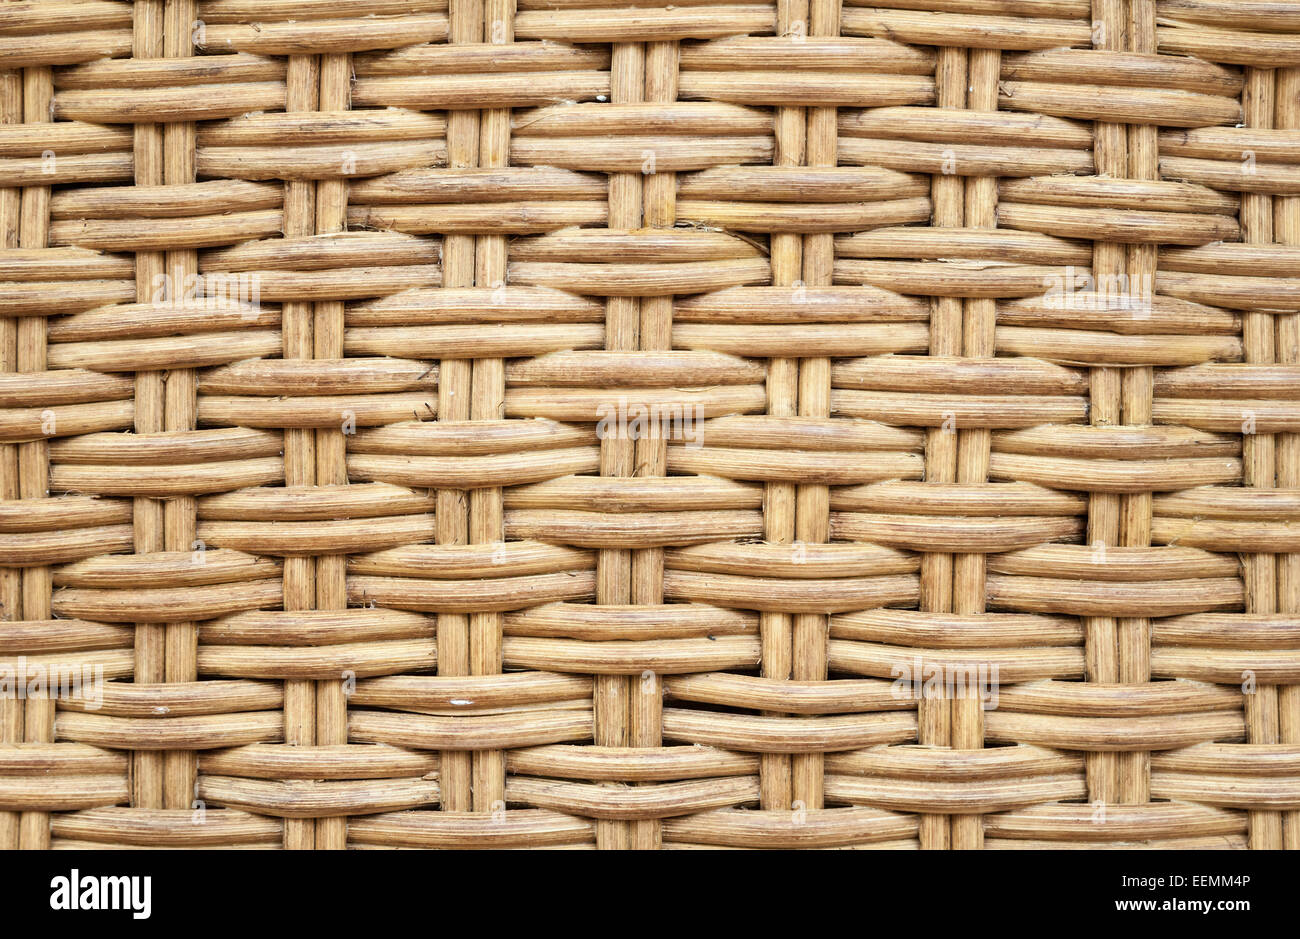 Old Wicker Furniture Wall. Closeup Background Photo Texture